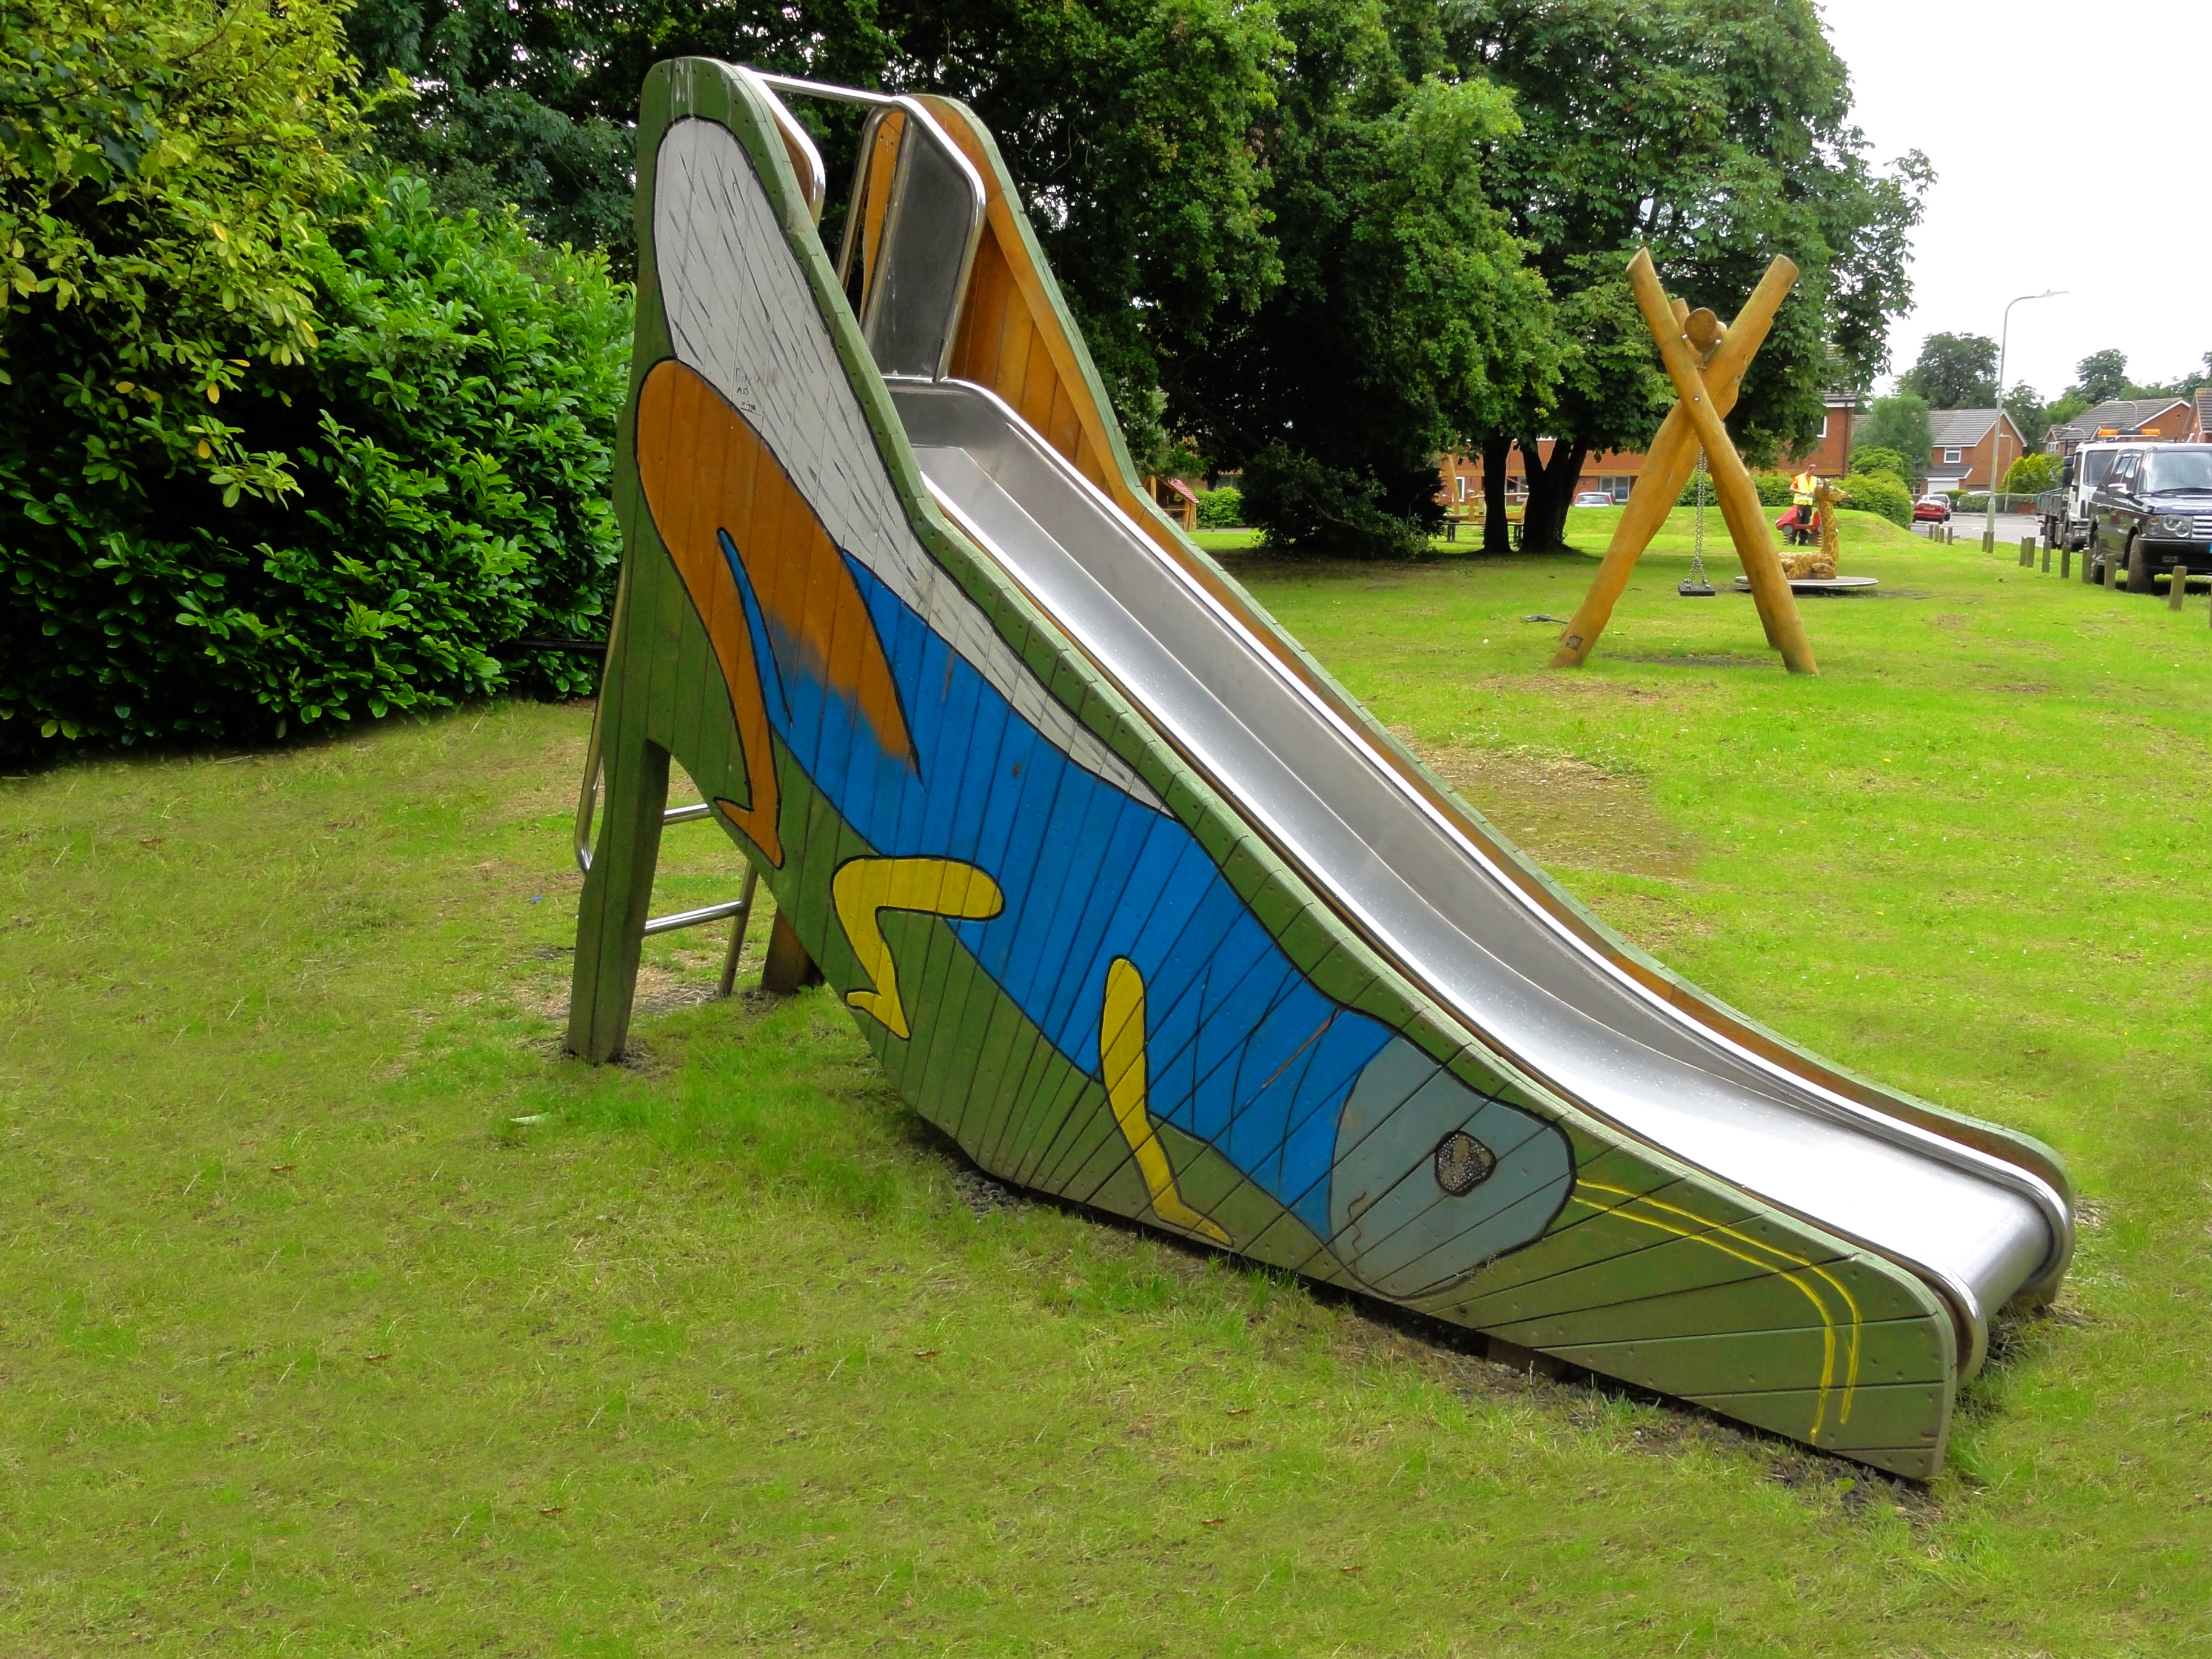 Grasshopper slide, of stainless steel with ladder, h 1.50 m, 54.05B2-150M - CPCL